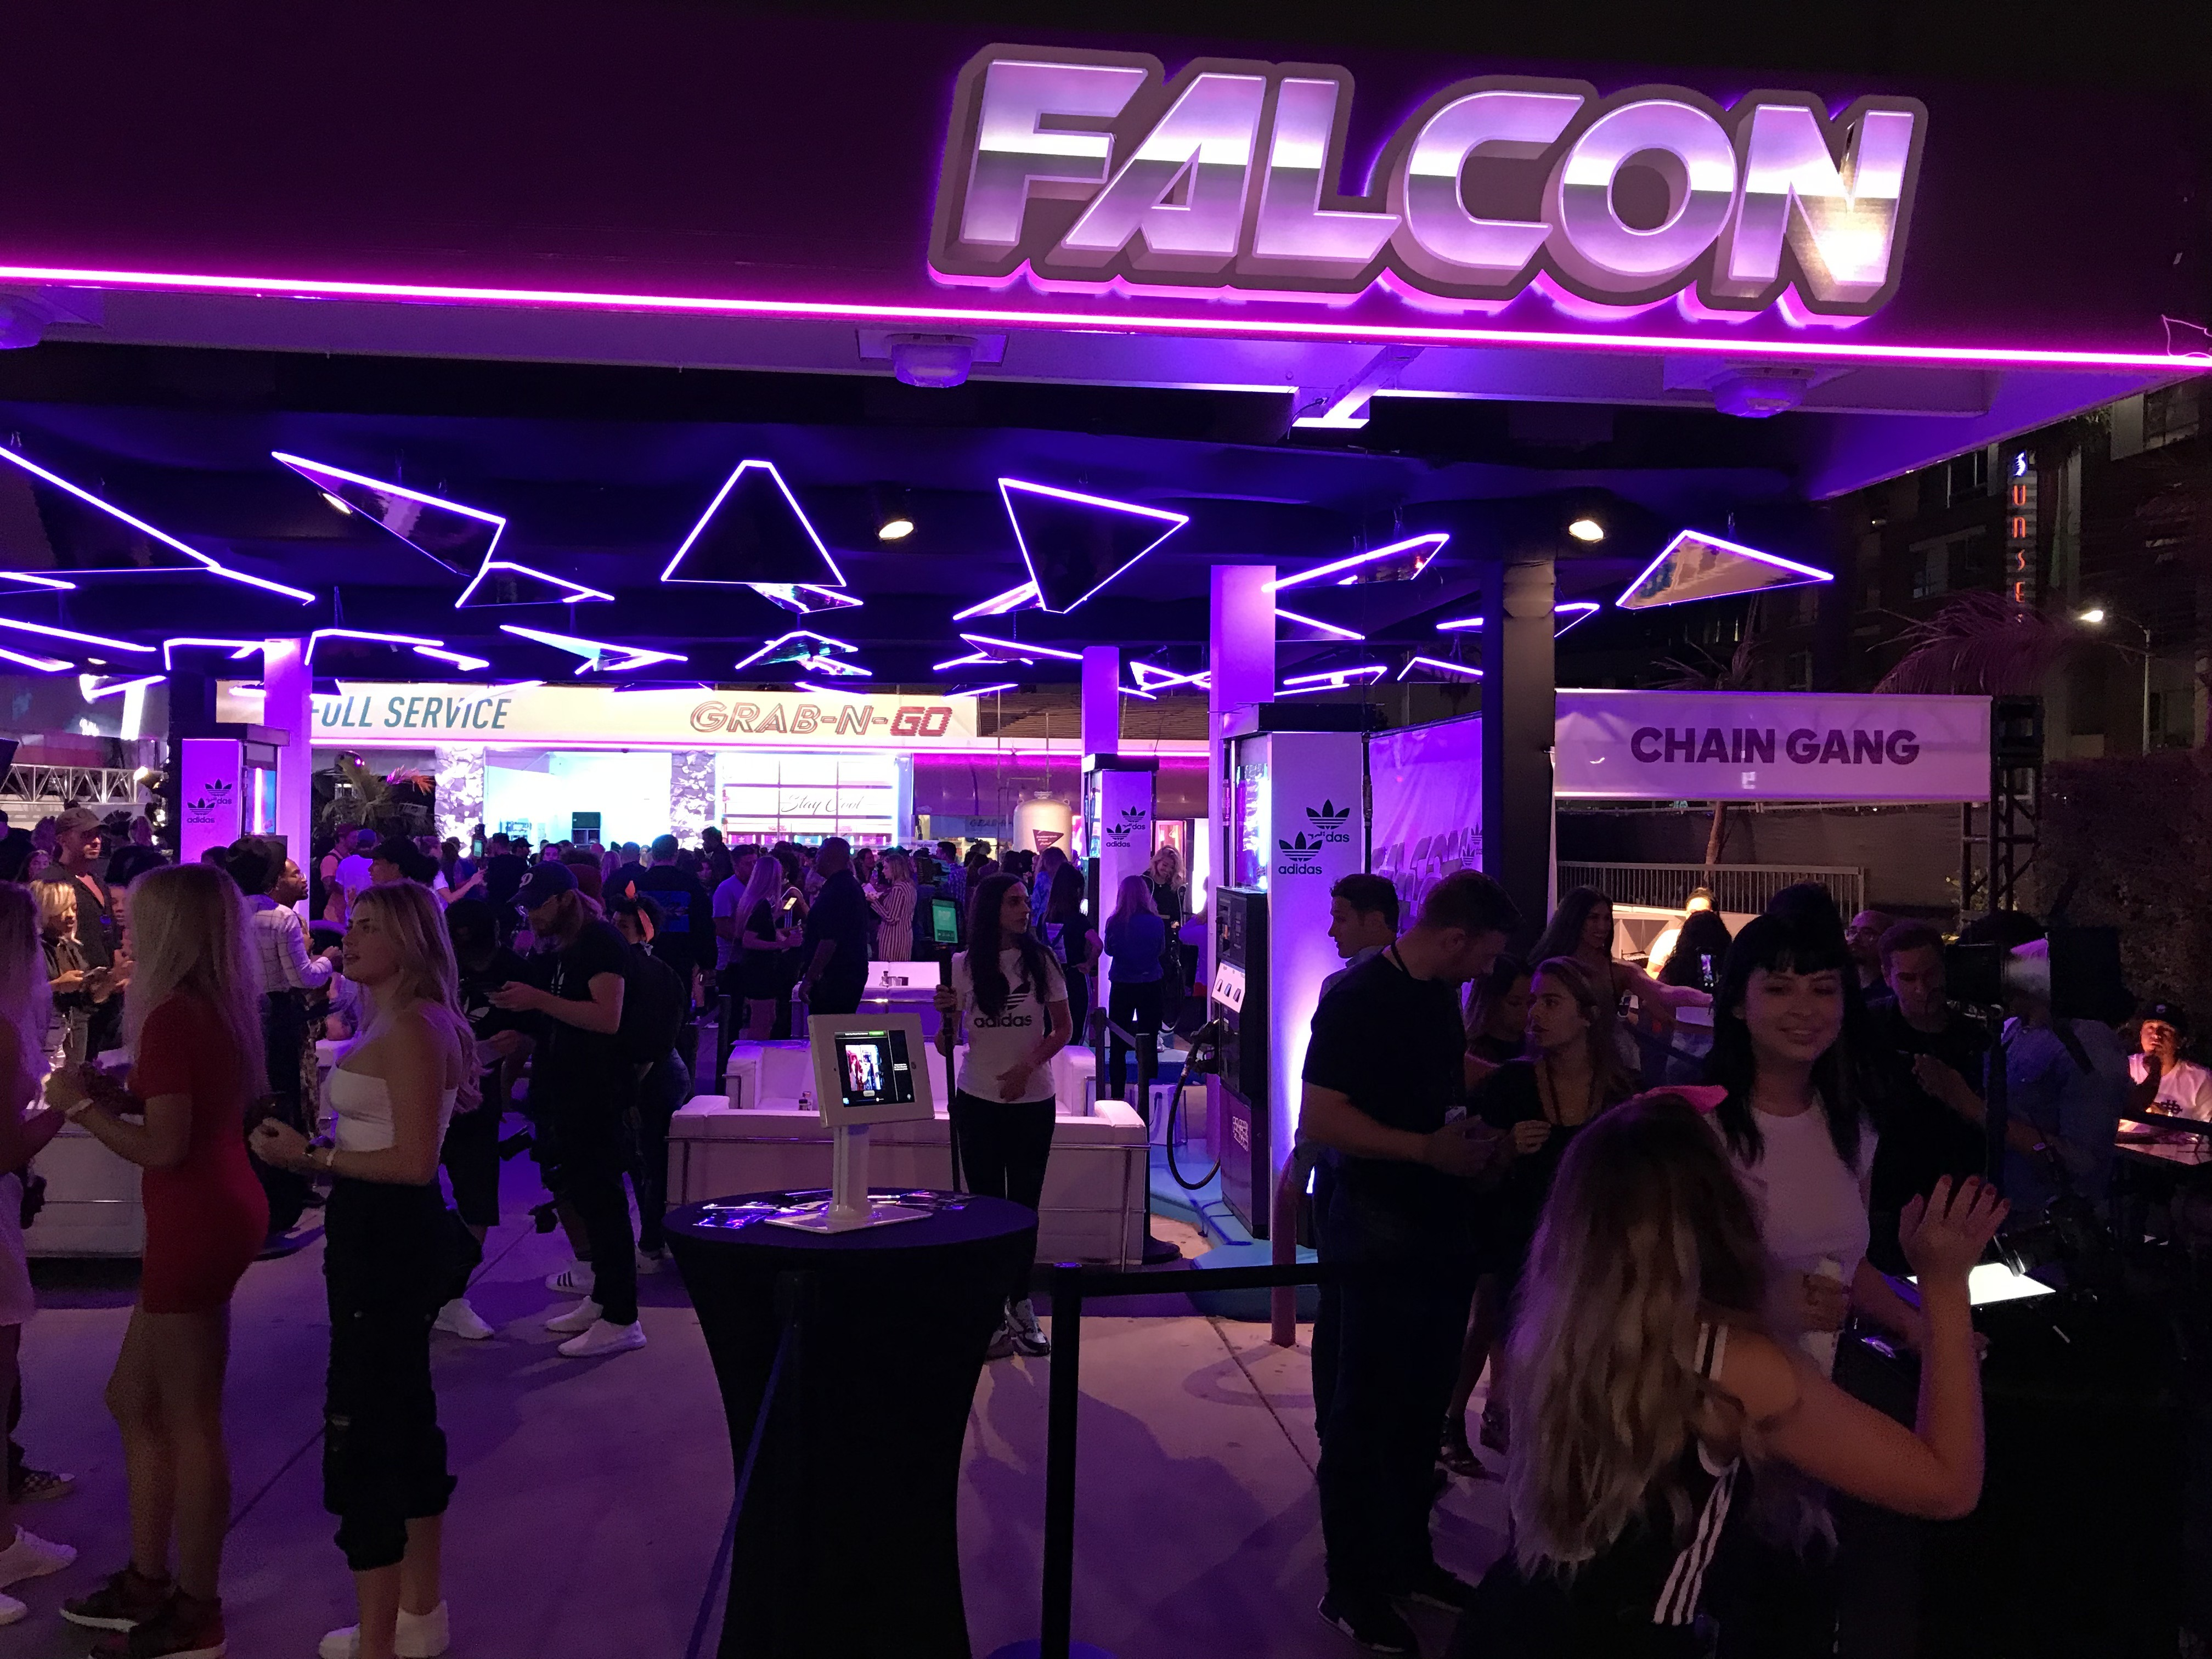 Image Options Helps out with an Incredible Event Space Launch for Adidas Falcon Sneakers